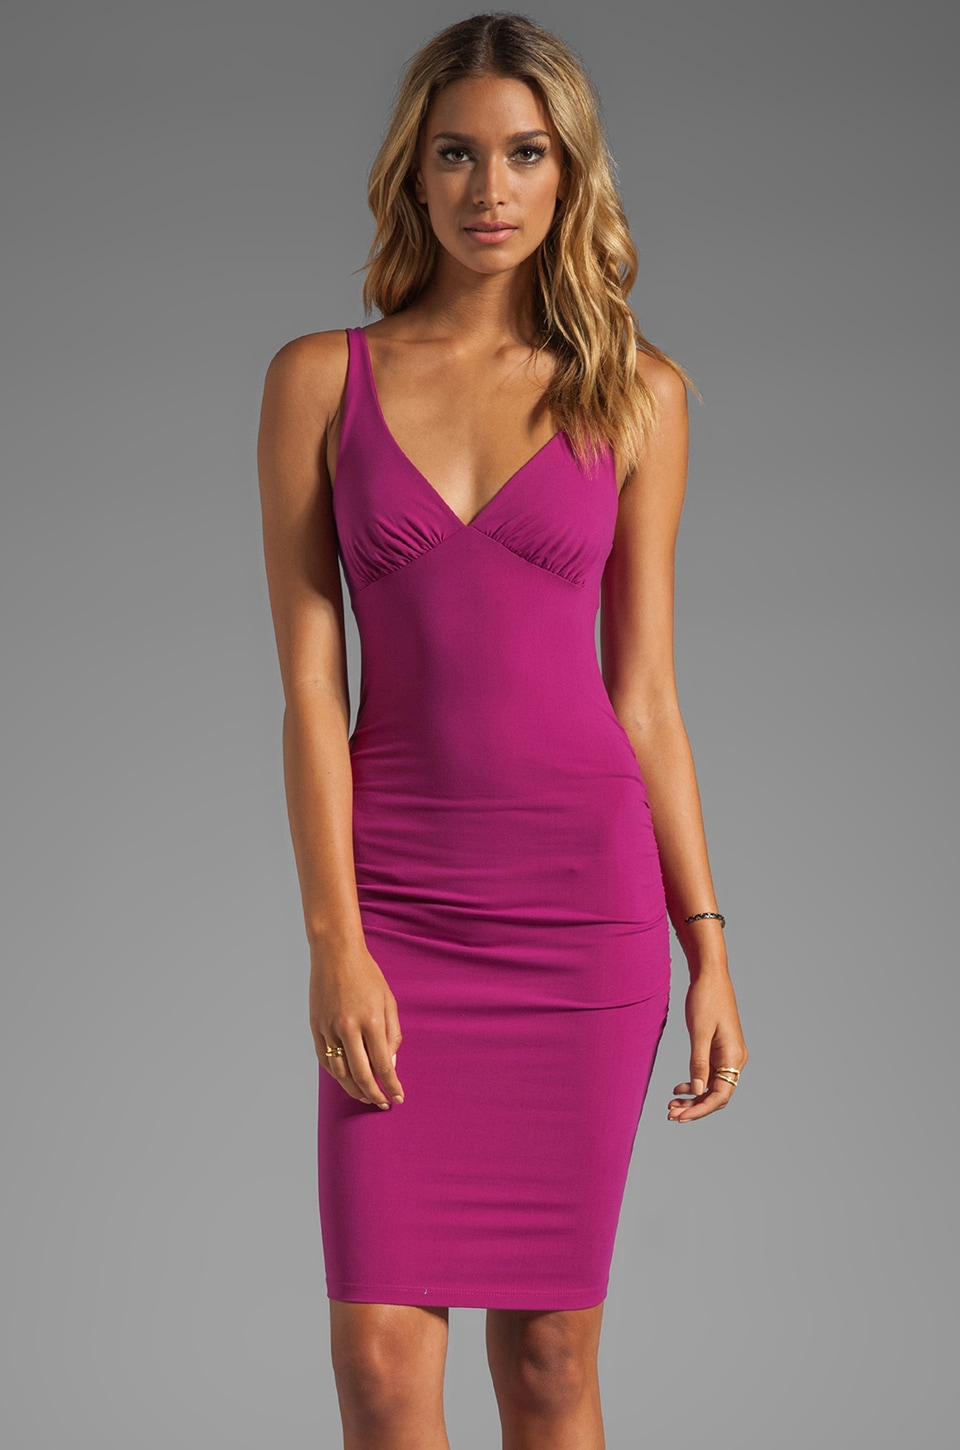 Susana Monaco Tank Dress in Bombshell Pink